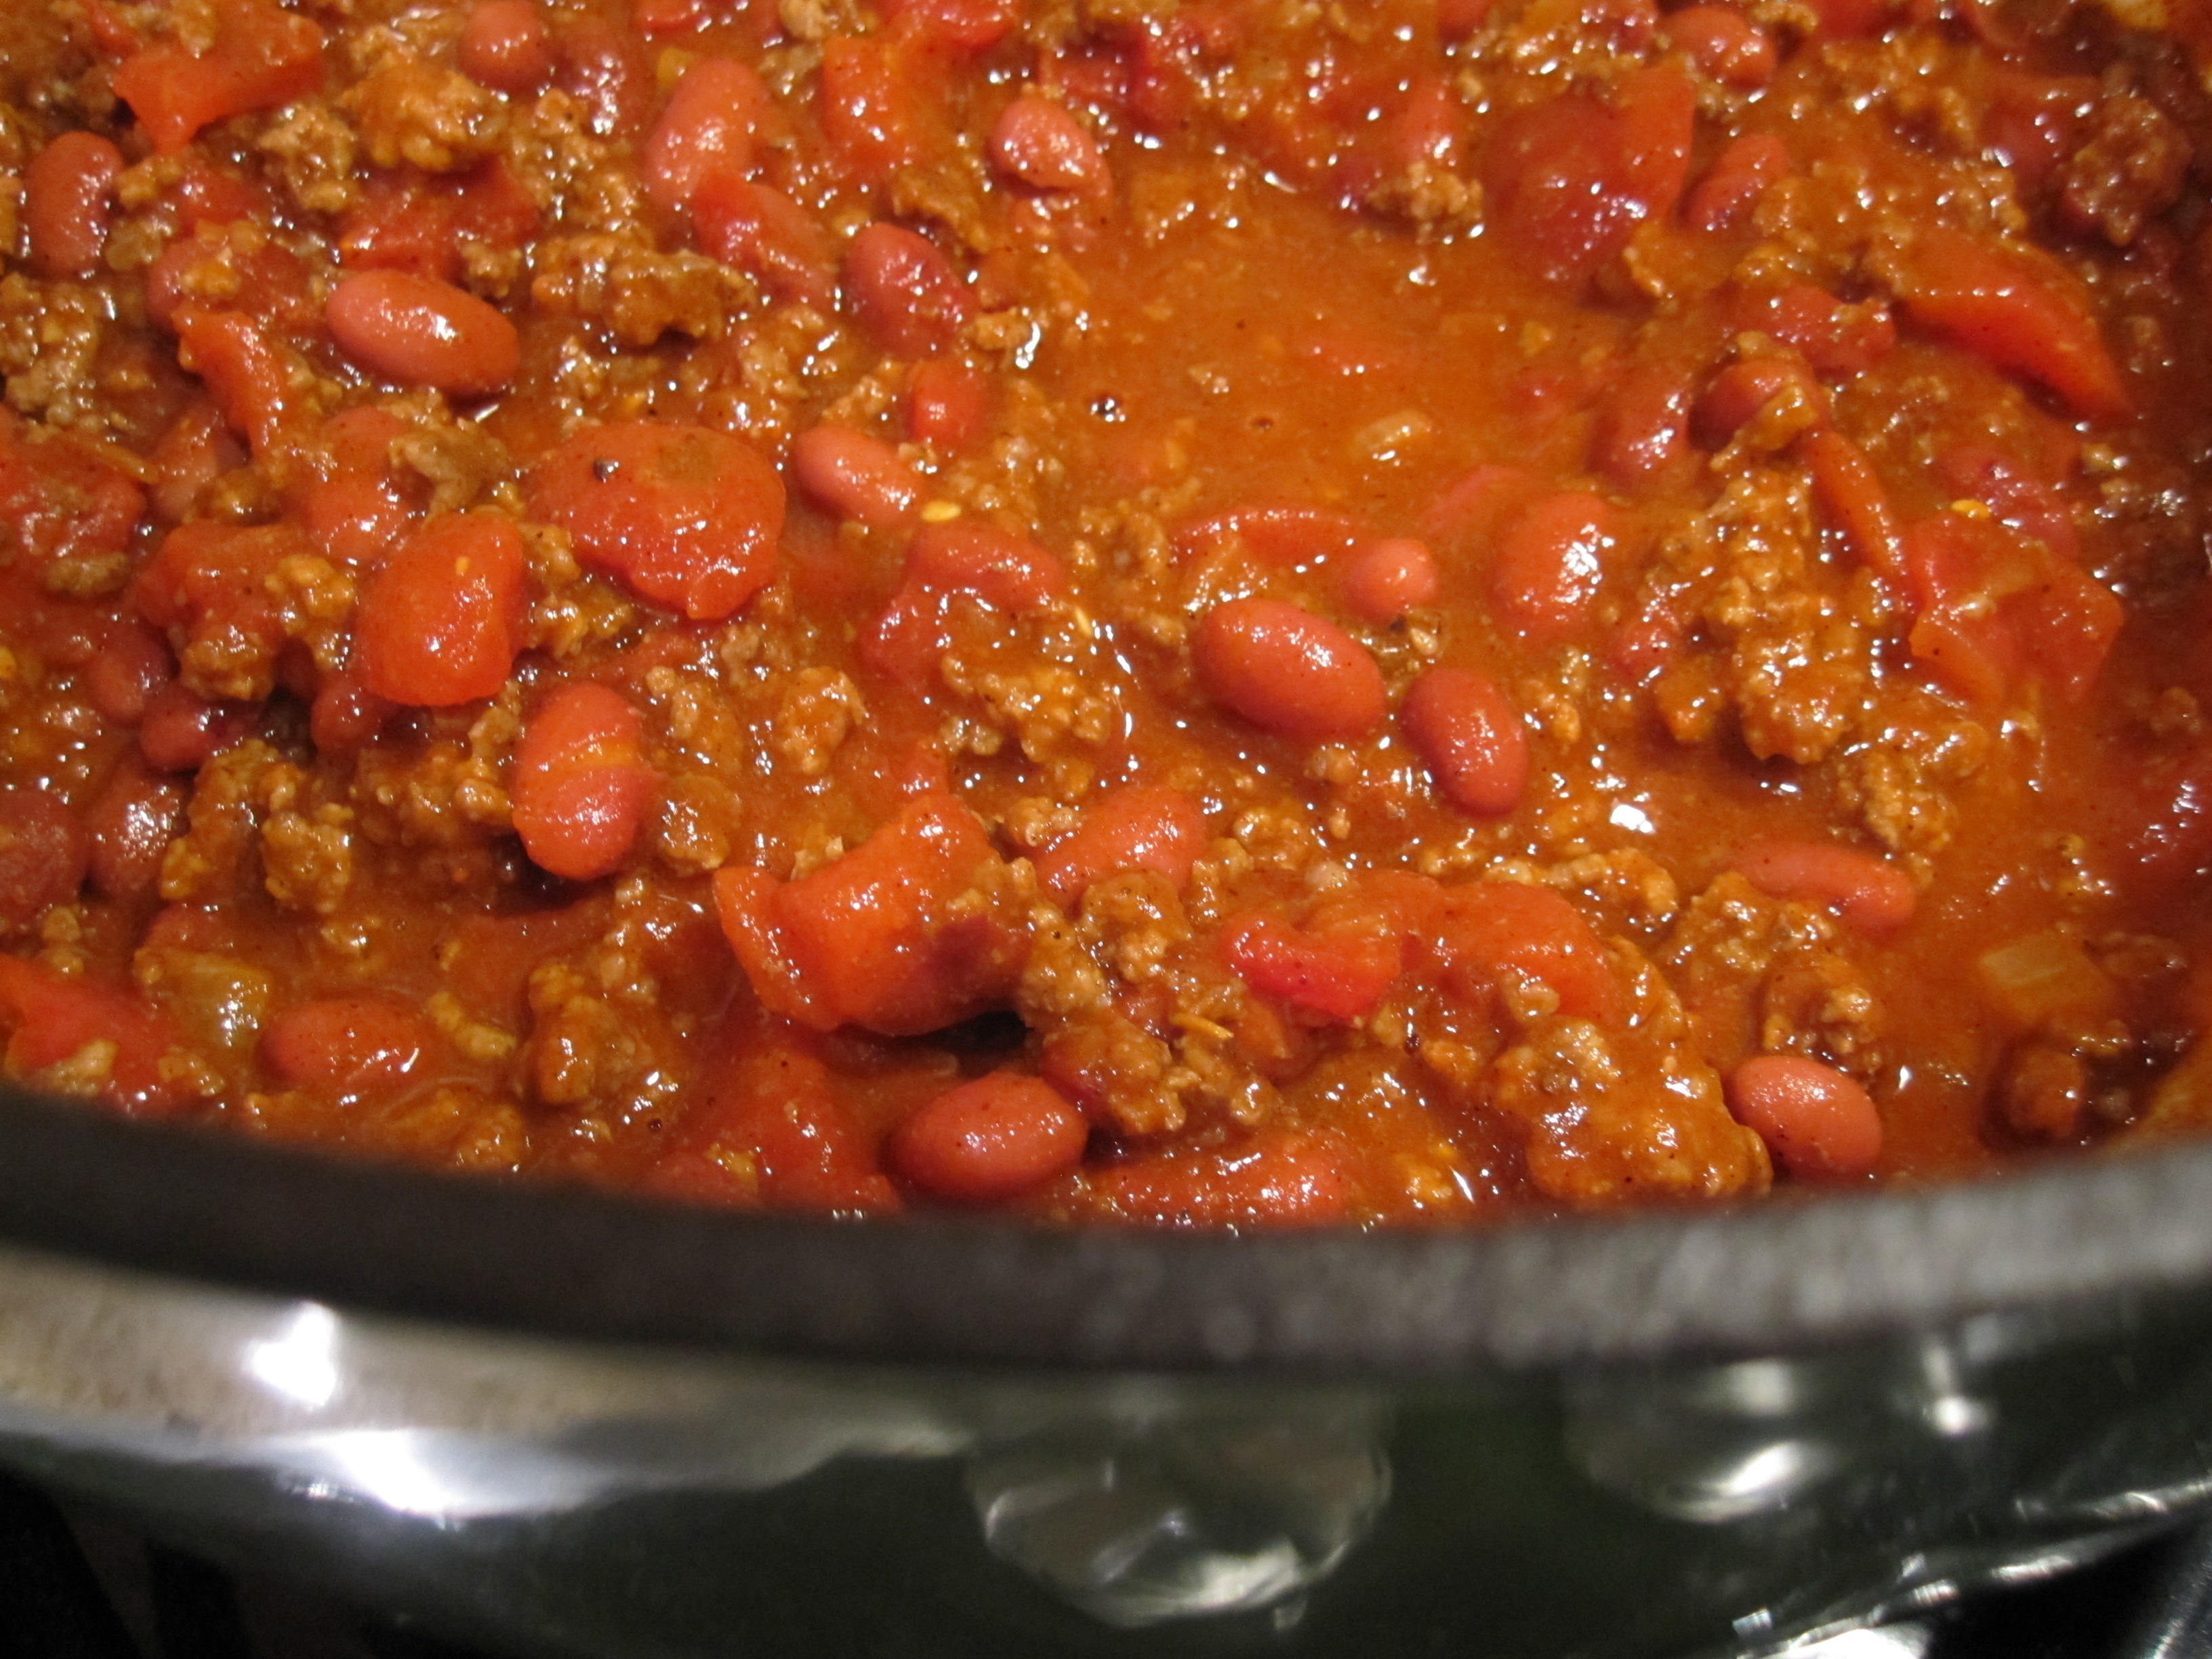 The other chili | the south in my mouth